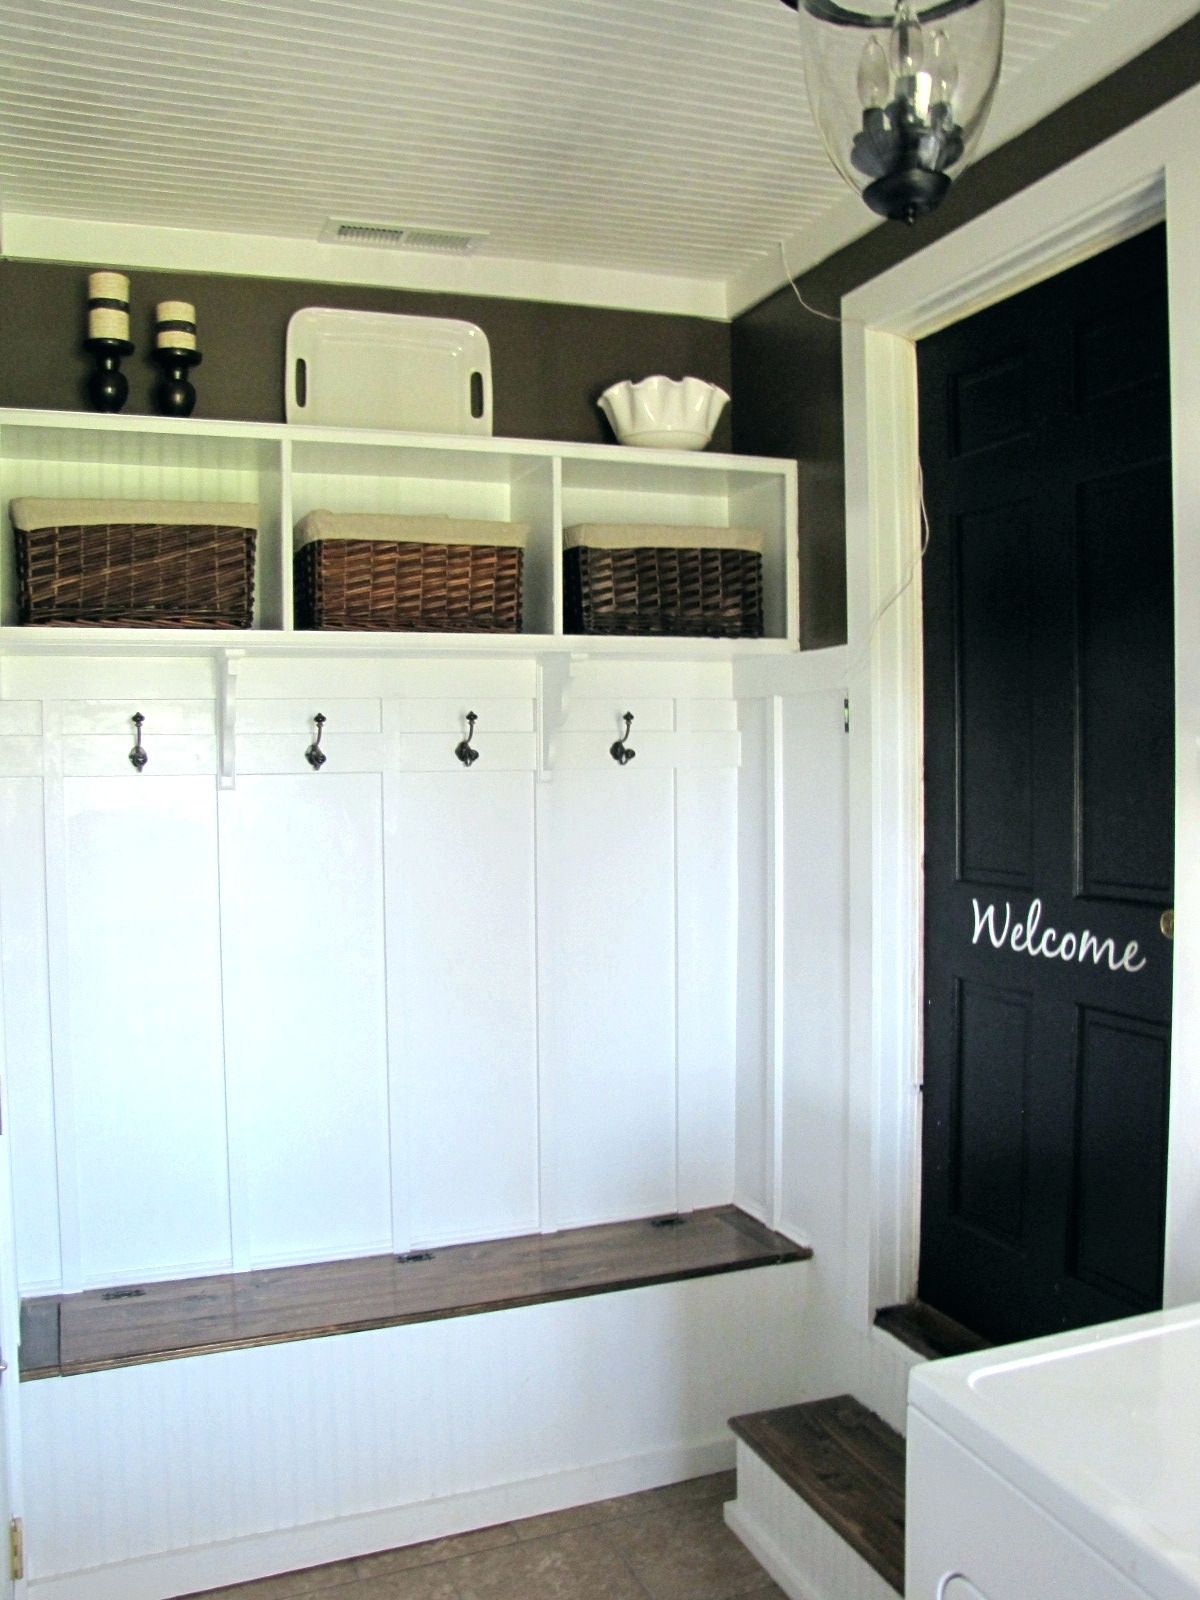 Bench Garage Shoe Storage Bench Laundry Mudroom Makeover Coat Rack Ideas Storages Narrow Entryway With Extra Long Unique Mudroom Makeover Home Home Remodeling